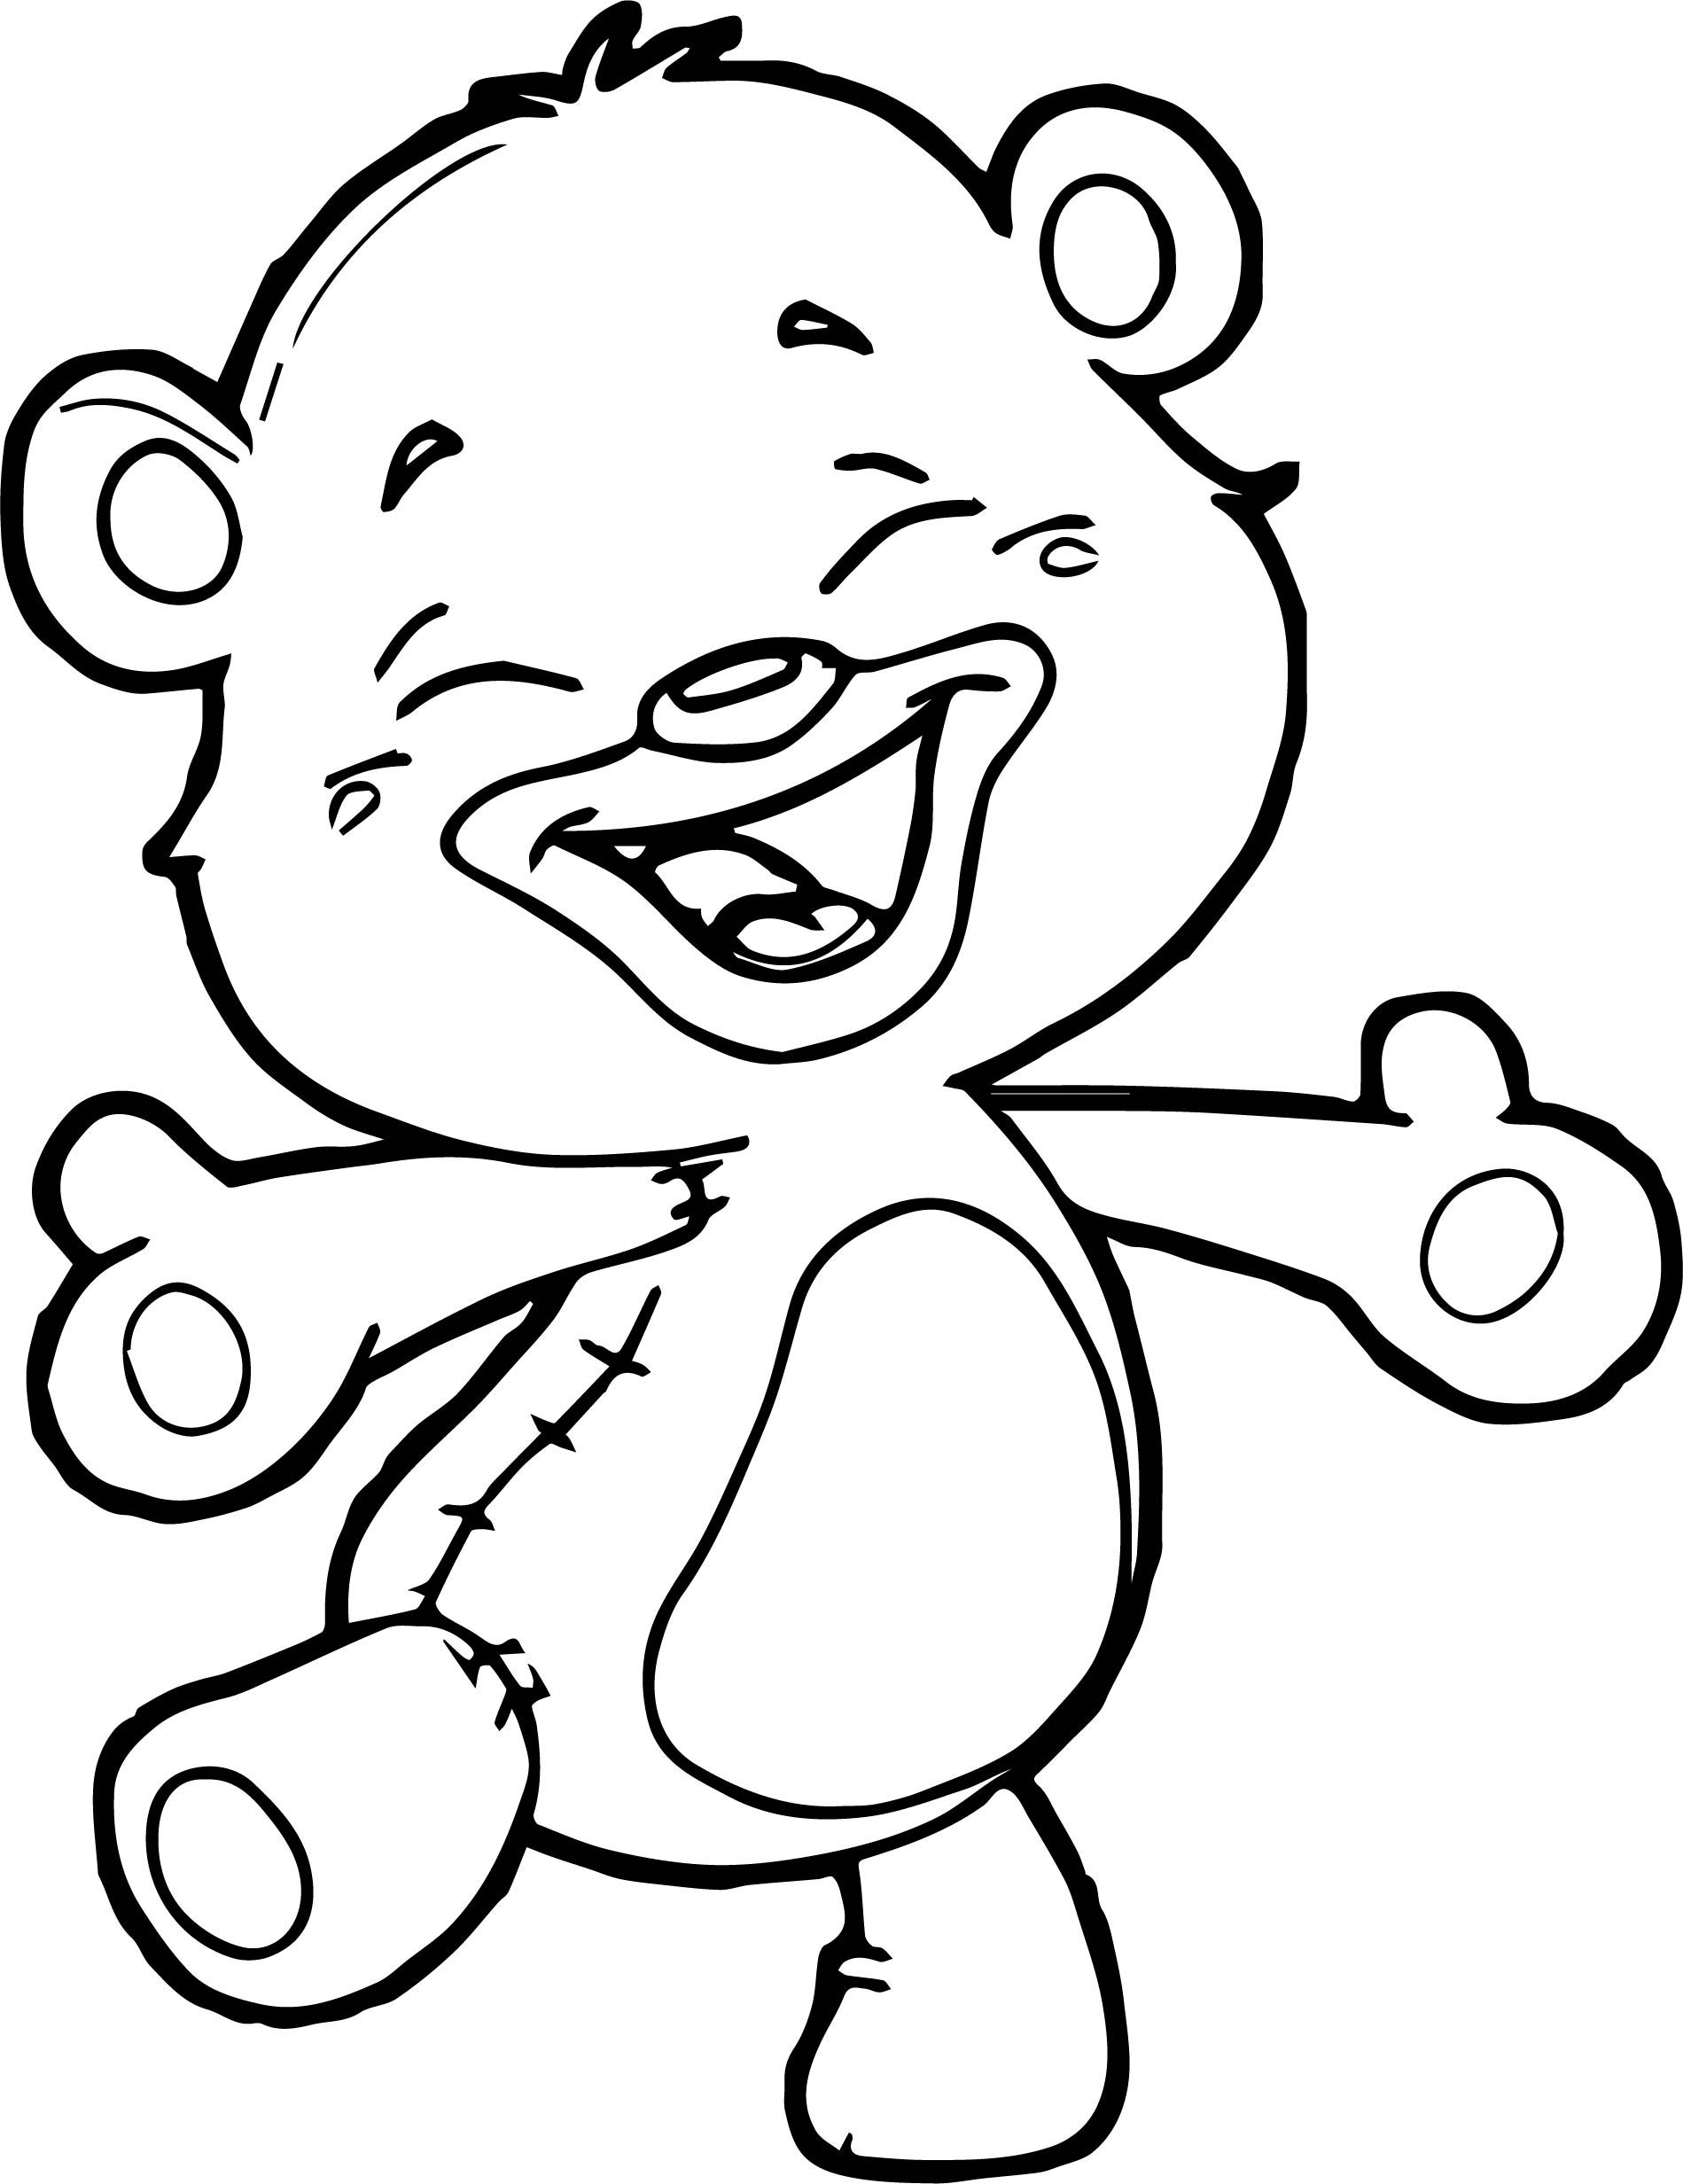 Cool Happy Small Bear Coloring Page Bee Coloring Pages Lego Coloring Pages Bear Coloring Pages